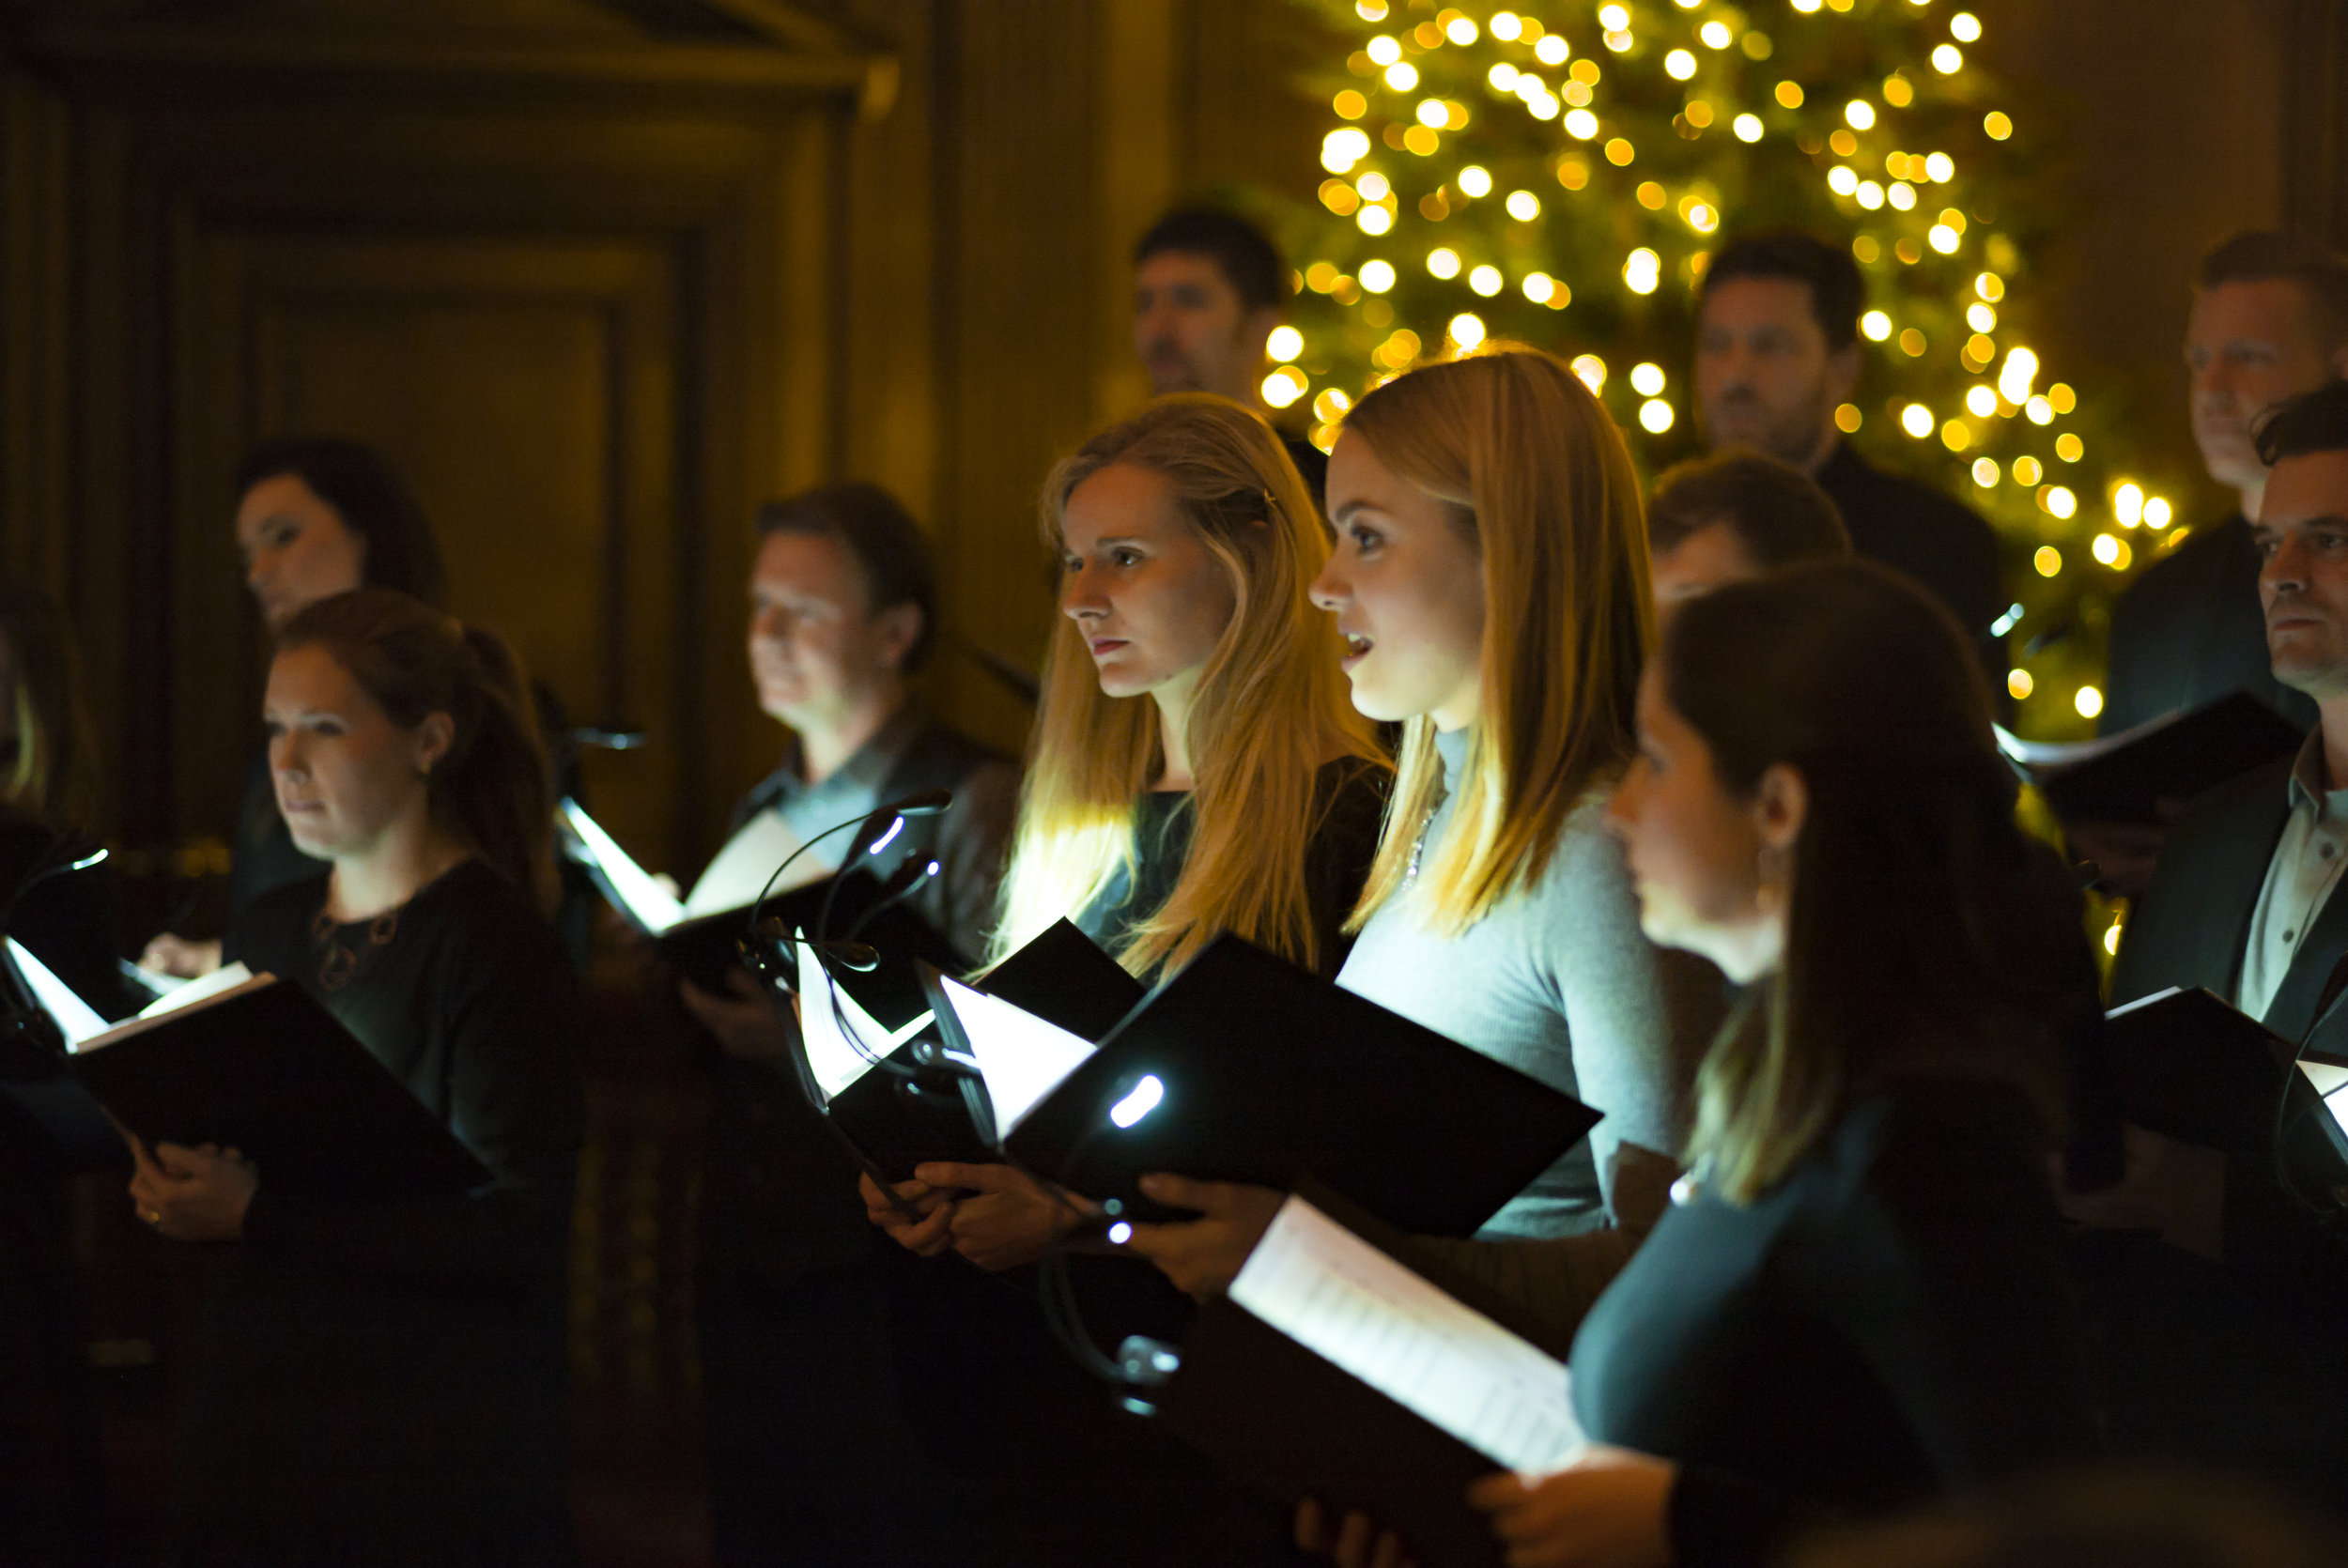 The Christmas Tree - I was thrilled to be asked by ORA to compose a new carol for them. It was especially exciting, knowing the high standard of the group, and imagining their beautifully blended voices performing the piece. The commission was for choir and percussion, and the first task was to find the text. I searched through many different options, and kept coming back to The Christmas Tree, by an anonymous author, as it instantly felt singable and joyful, and I knew that ORA were after something celebratory as their Christmas Eve carol. It also offered light and shade in the text, with a beautifully calm and serene section at the end of the poem which immediately appealed. The addition of the timpani added extra power and energy support the choir. Hearing ORA perform the piece for the first time at rehearsals was a real thrill. I can only hope that the carol adds a little Christmas cheer for many years to come!This commission has been generously supported by Ian Taylor and features on ORA Singers' Christmas disc, Advent Calendar.